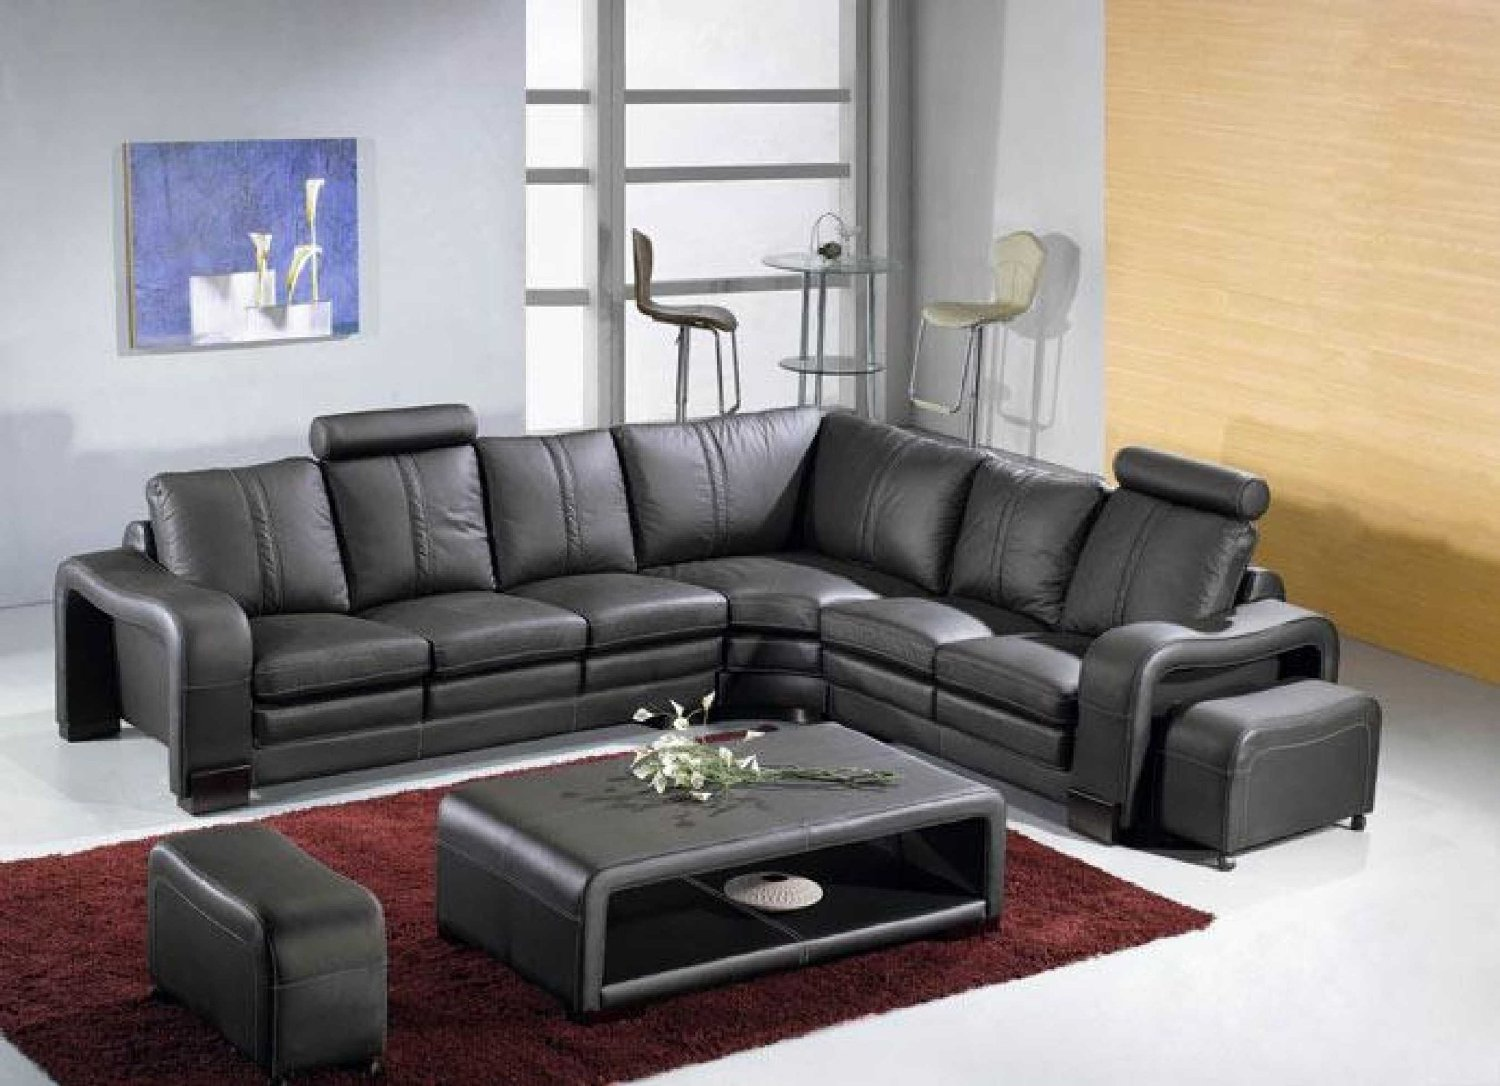 Sectional Sofas  Living Room Seating  HOM Furniture